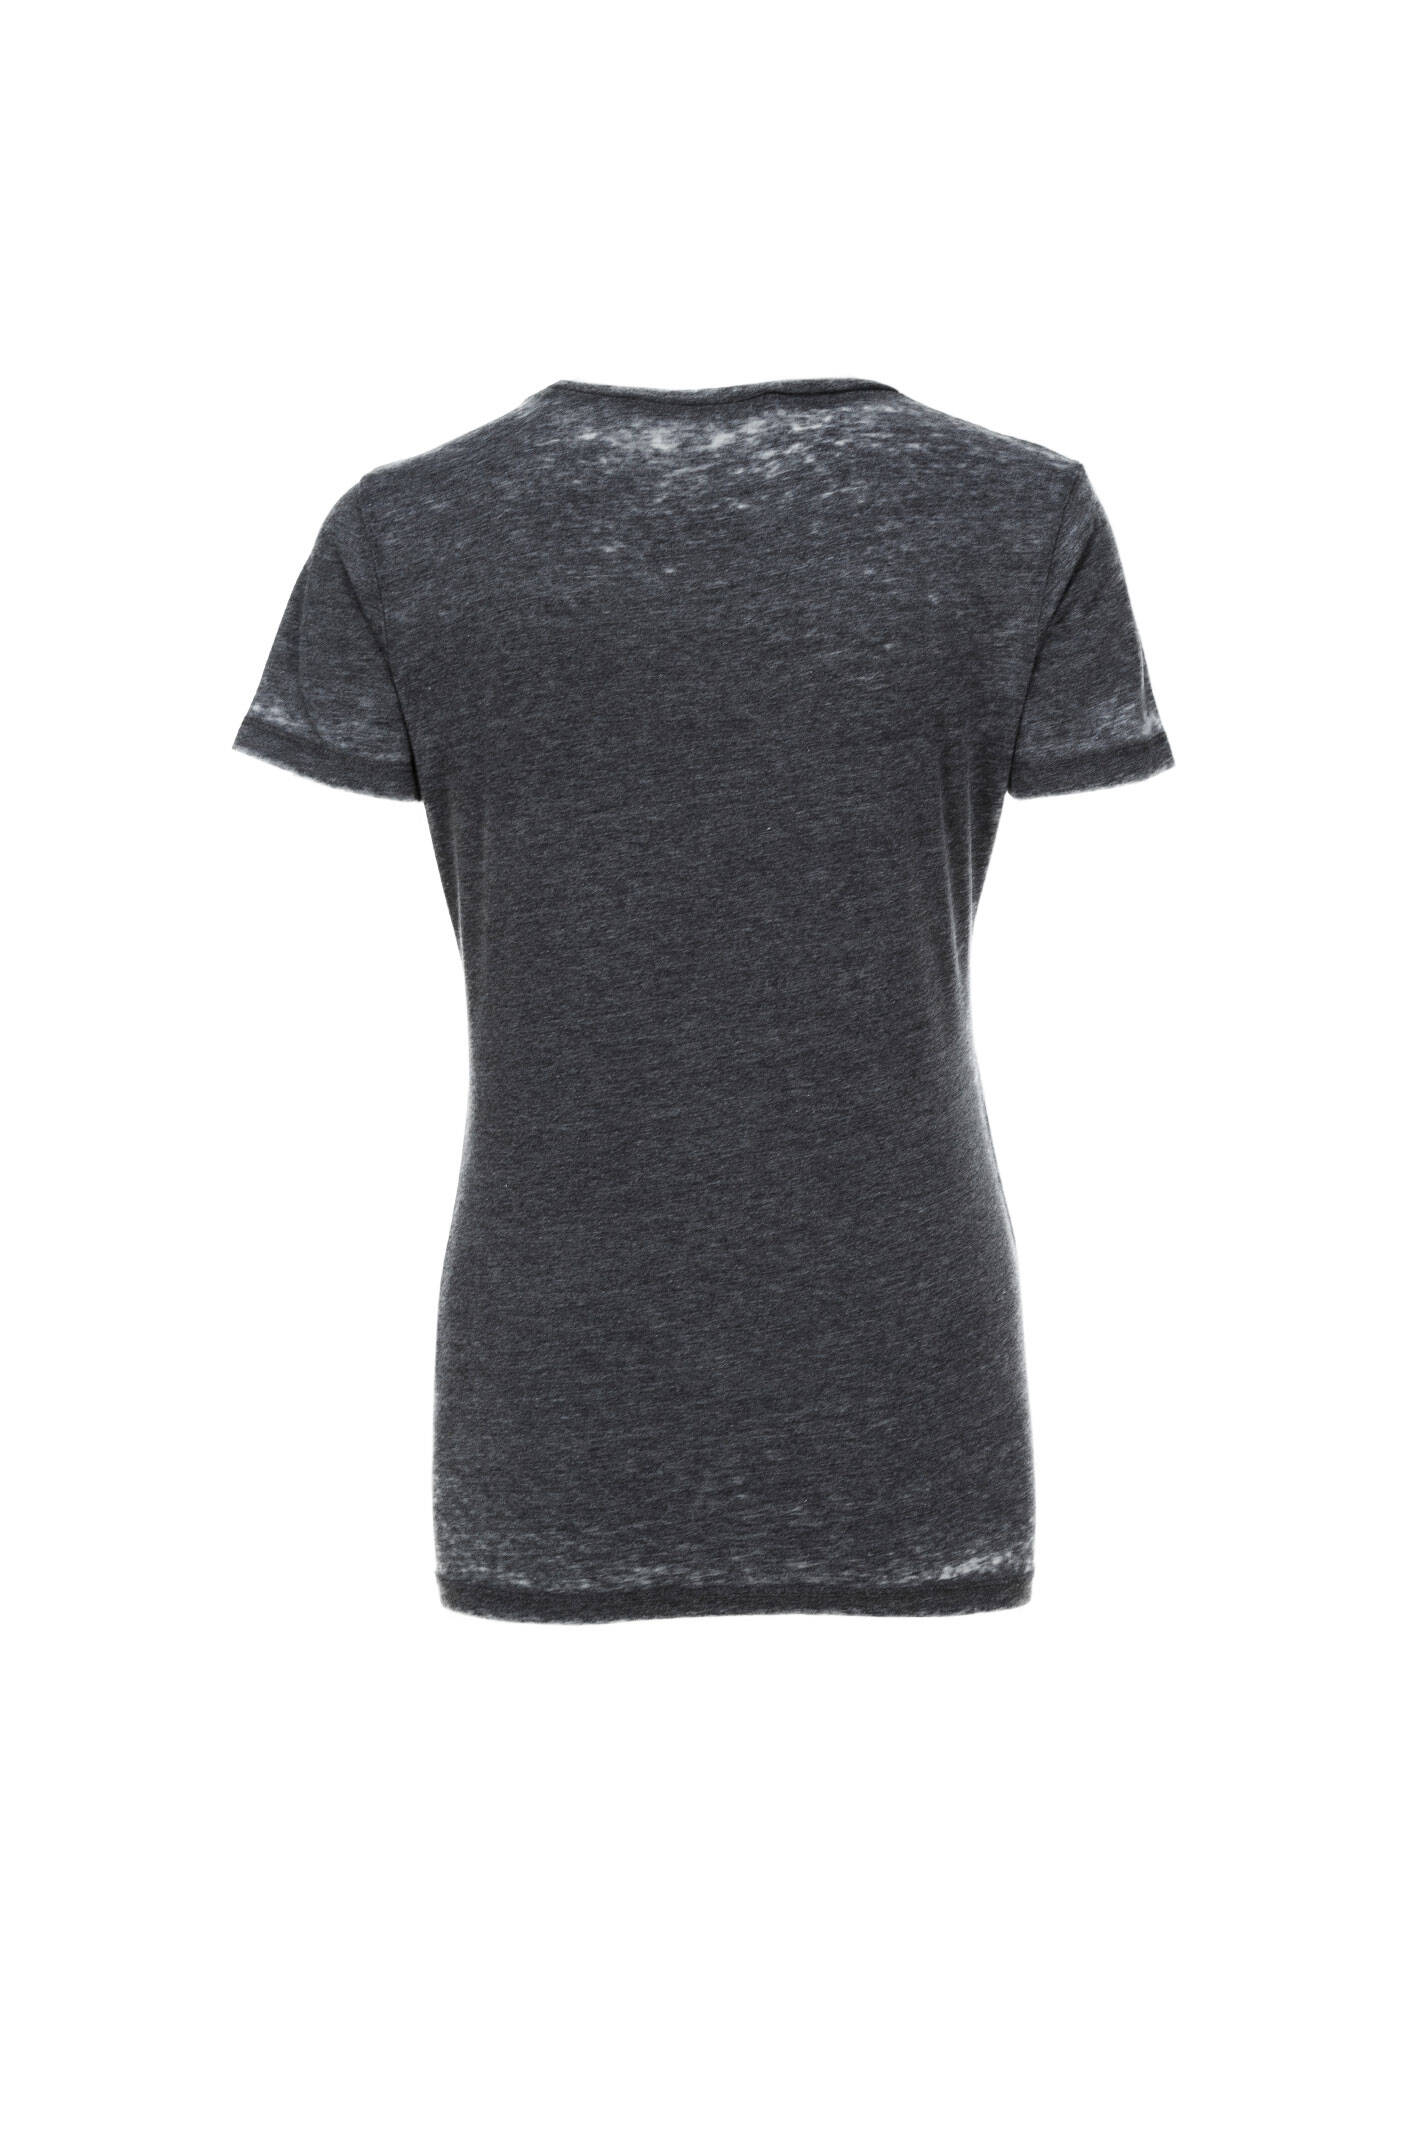 pieces t shirt guess jeans gray t shirts. Black Bedroom Furniture Sets. Home Design Ideas